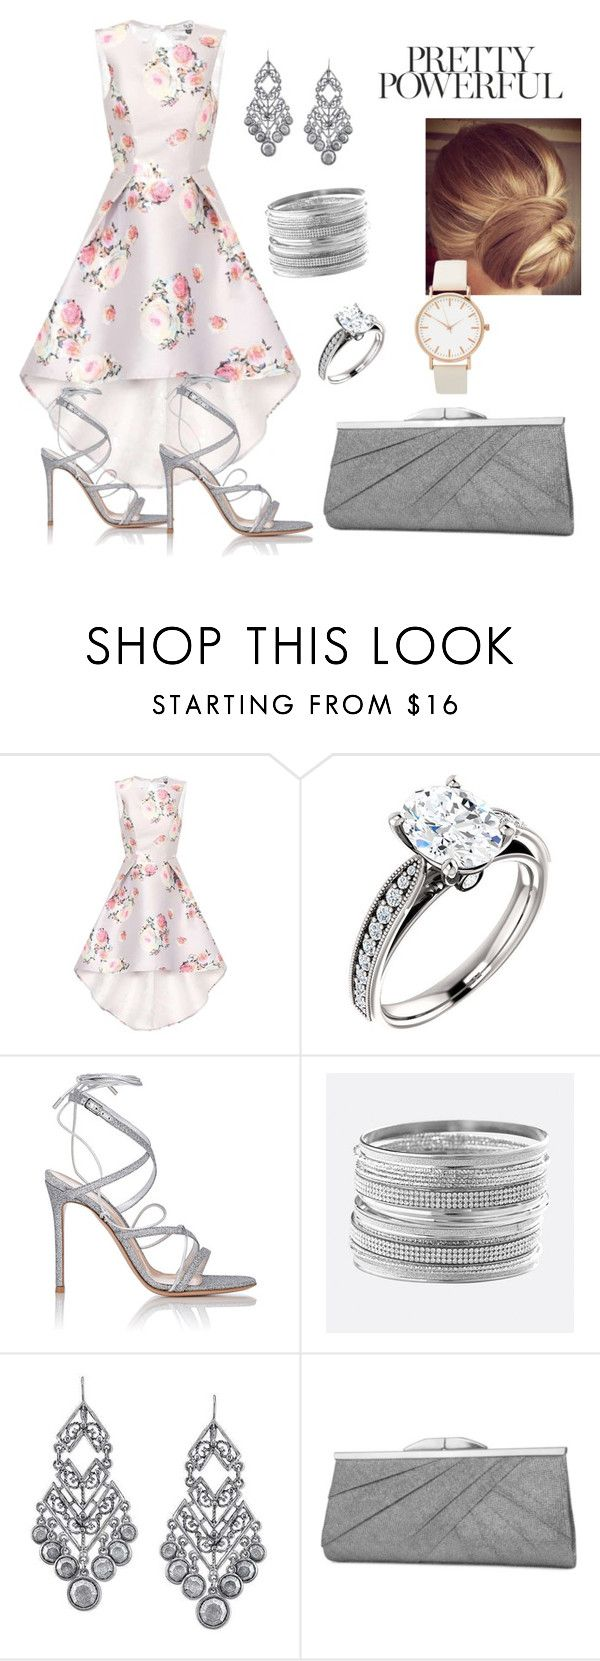 """""""Pretty powerful"""" by valecontarino on Polyvore featuring Chi Chi, Gianvito Rossi, Avenue, 1928 and Jessica McClintock"""